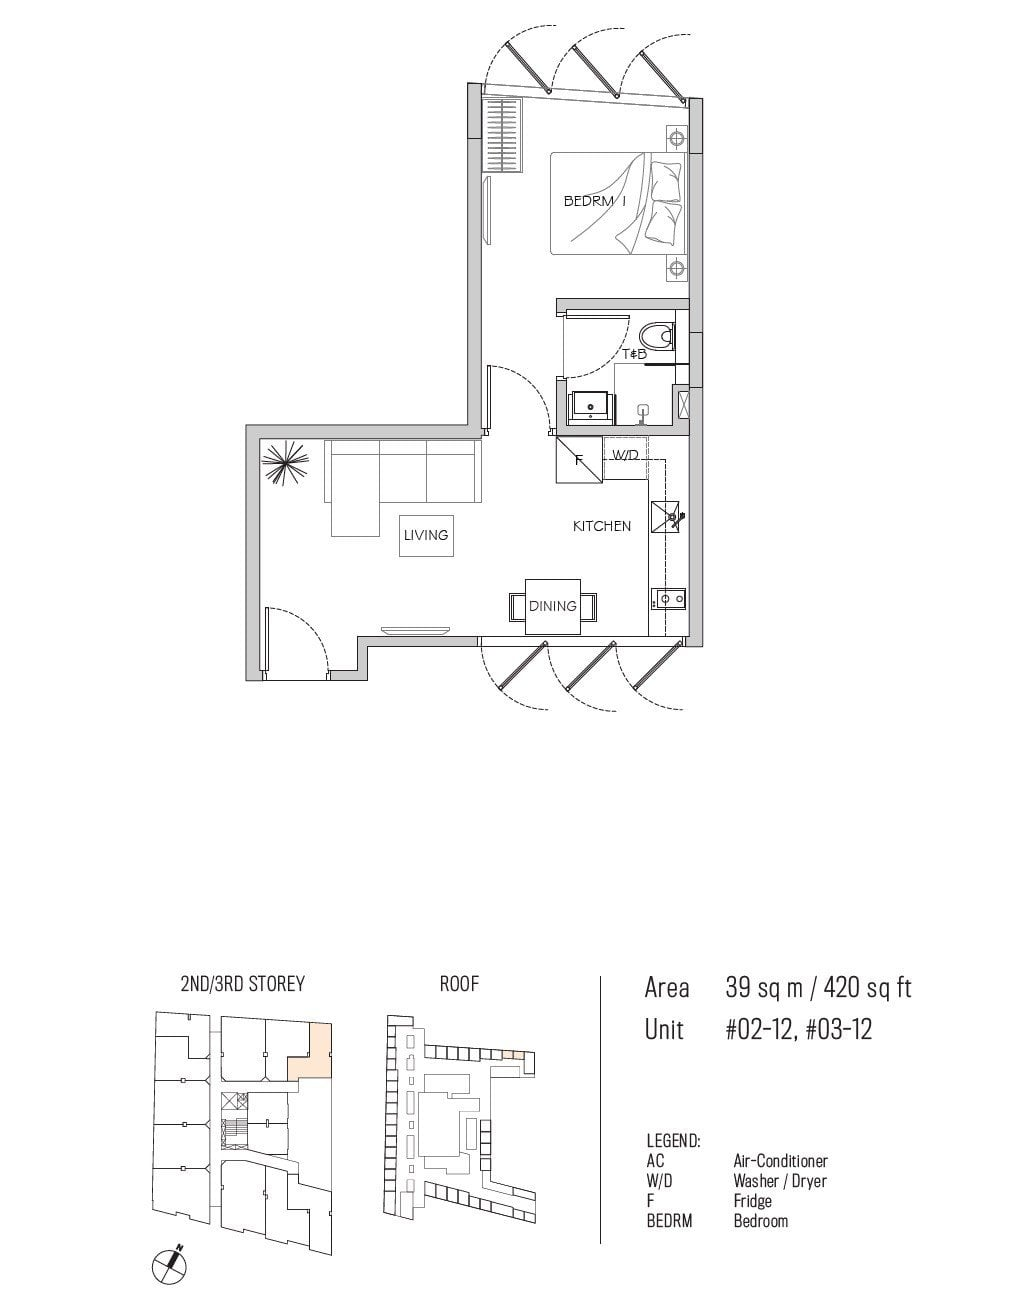 77 east coast floor plan 1BR type A1